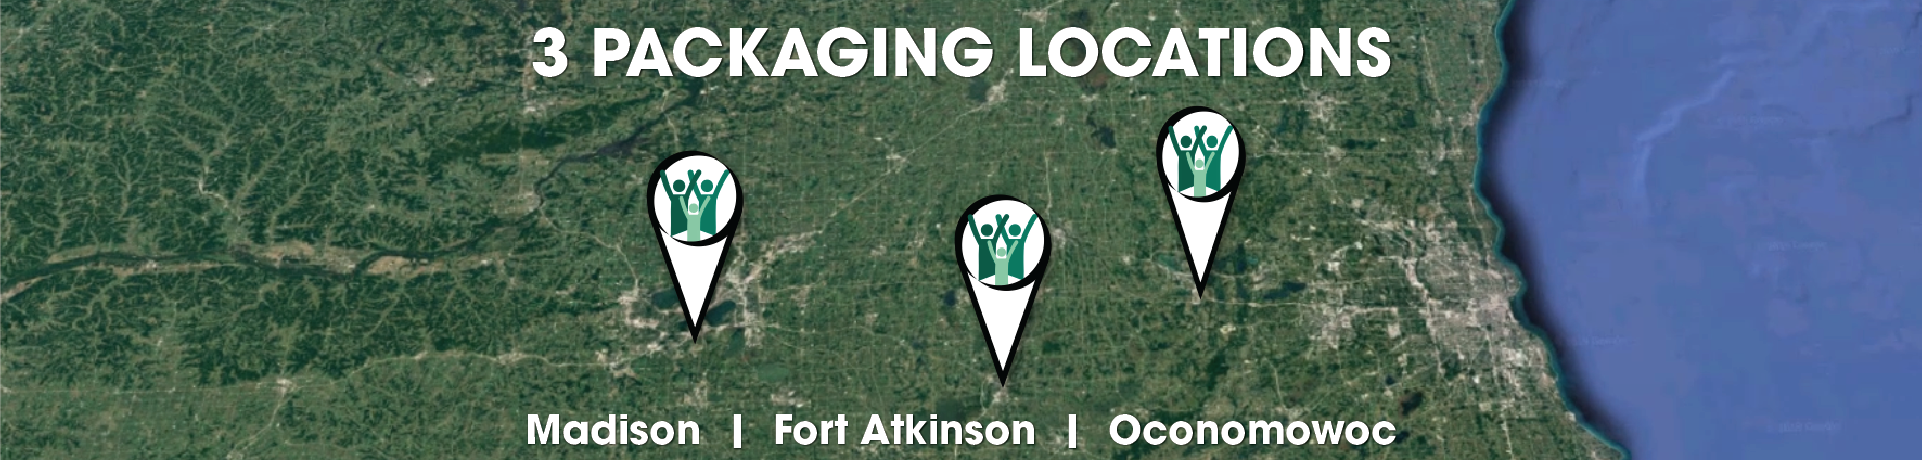 Map_3_Packaging_Locations_Banner